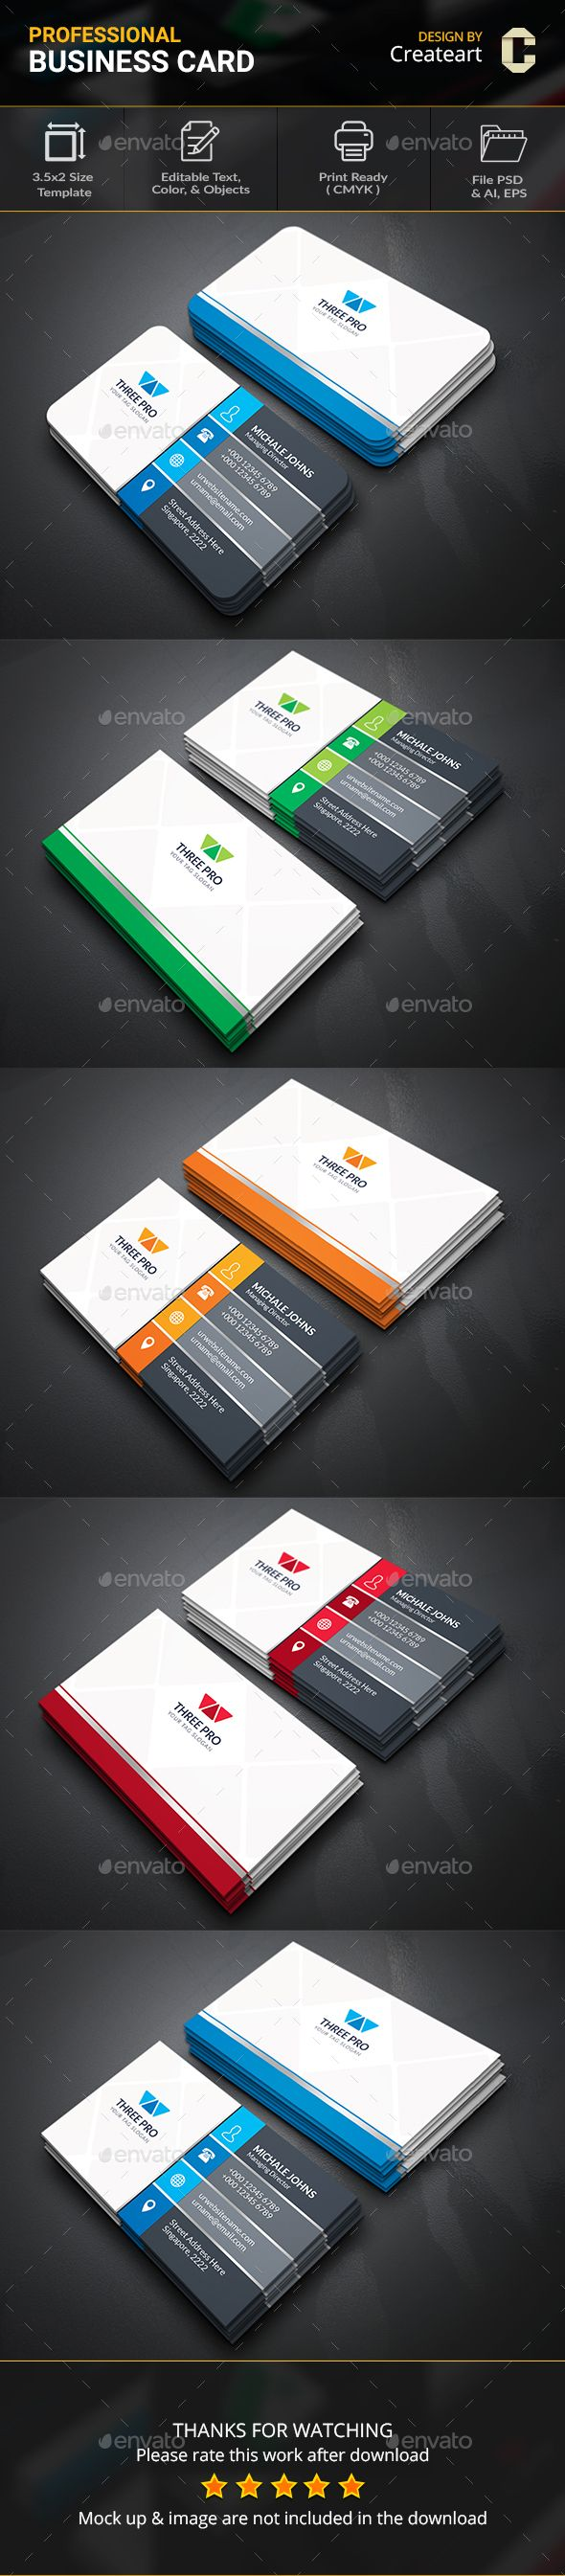 Silver Business Card - Business Cards Print Templates | Business ...